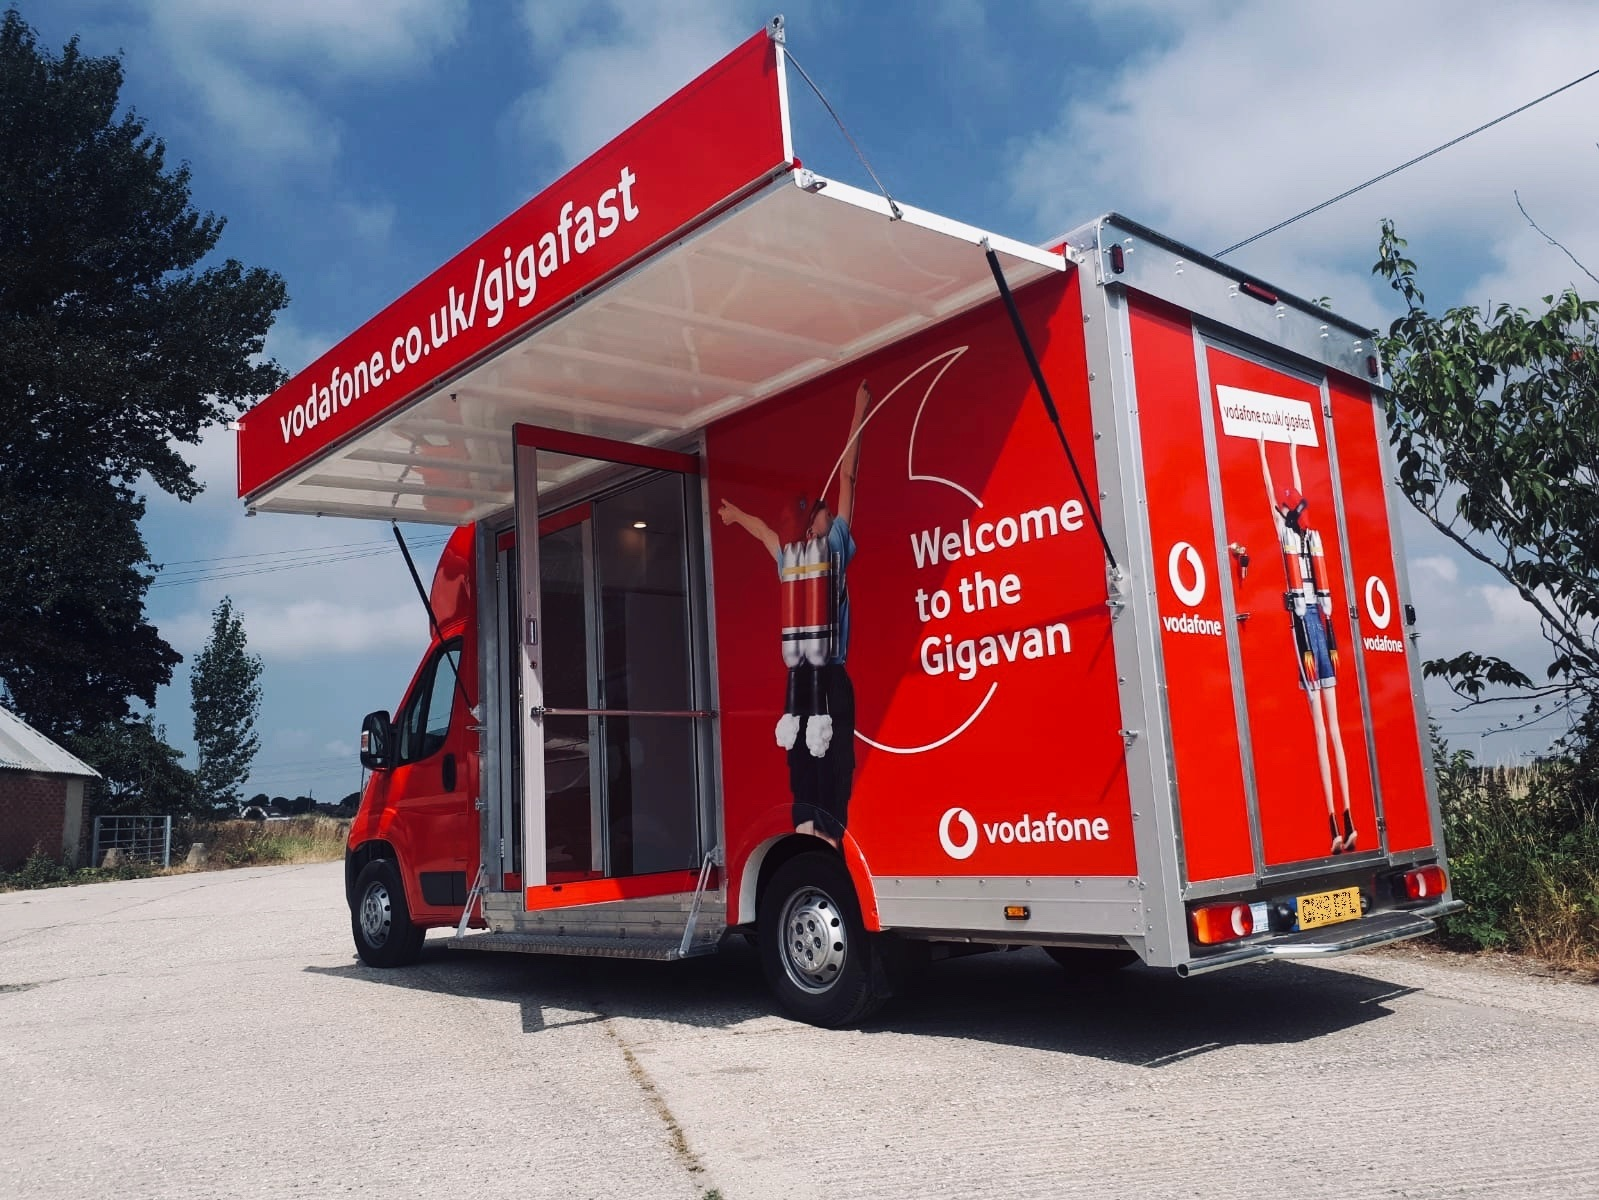 Exhibition trailer   retro catering vehicle    event display mobile   promotional truck   marketing truck